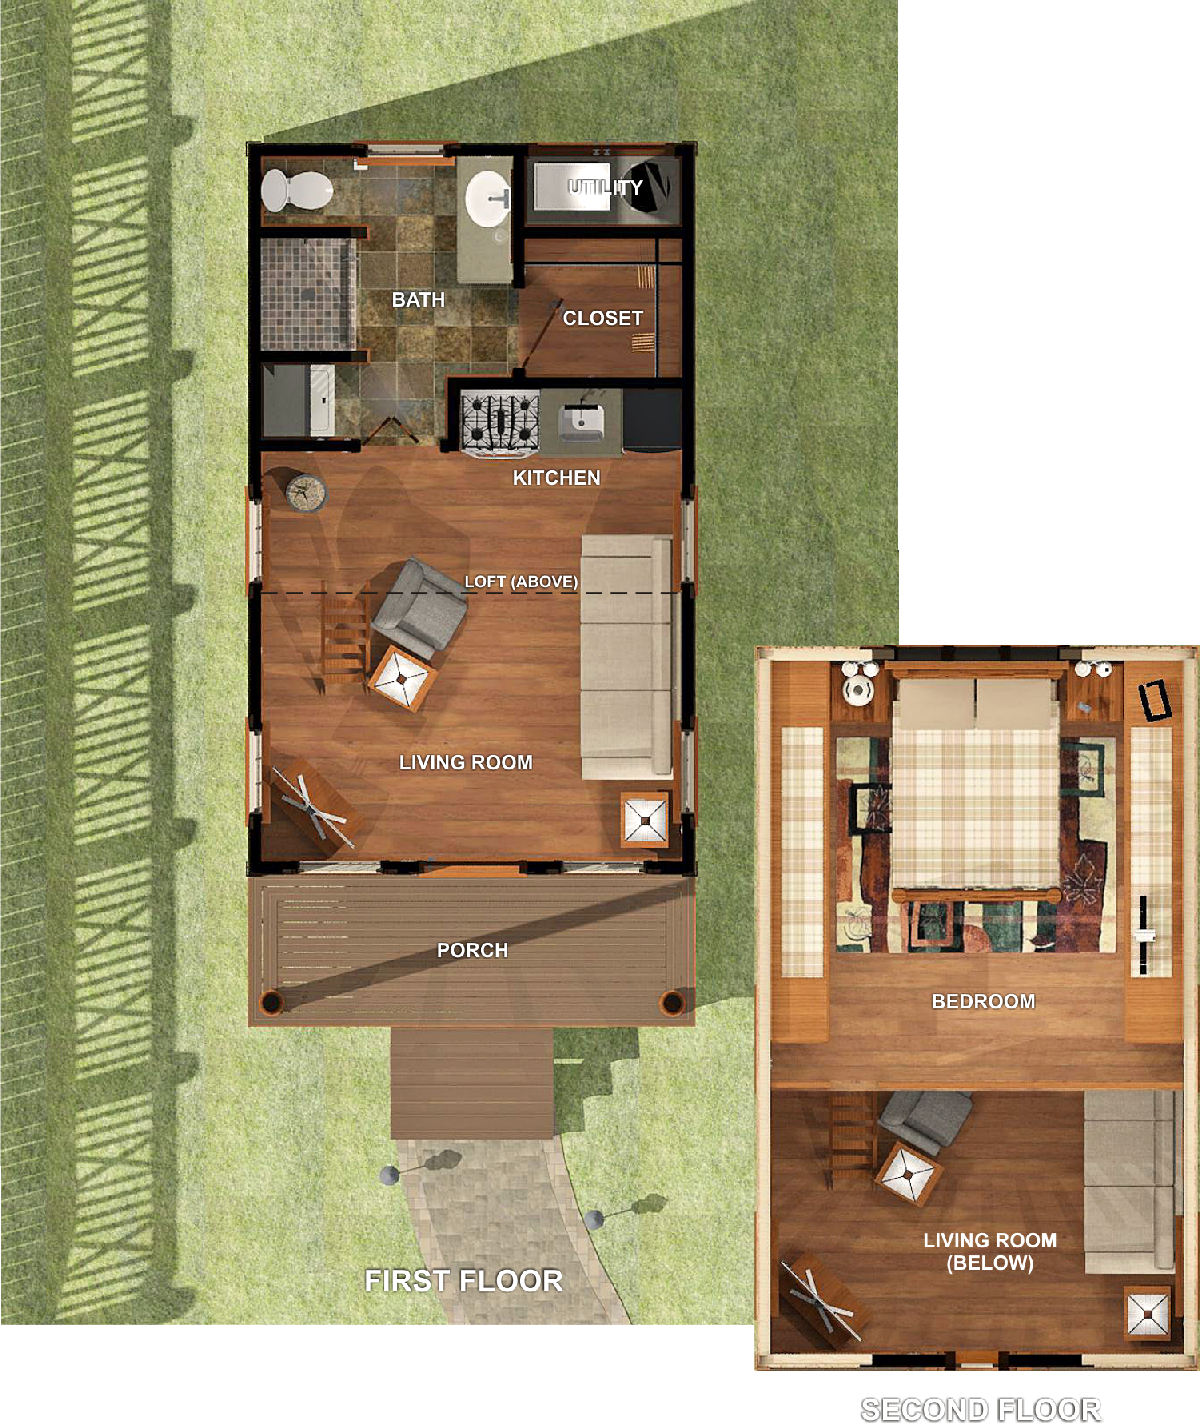 Texas tiny homes plan 448 for Design small house plans